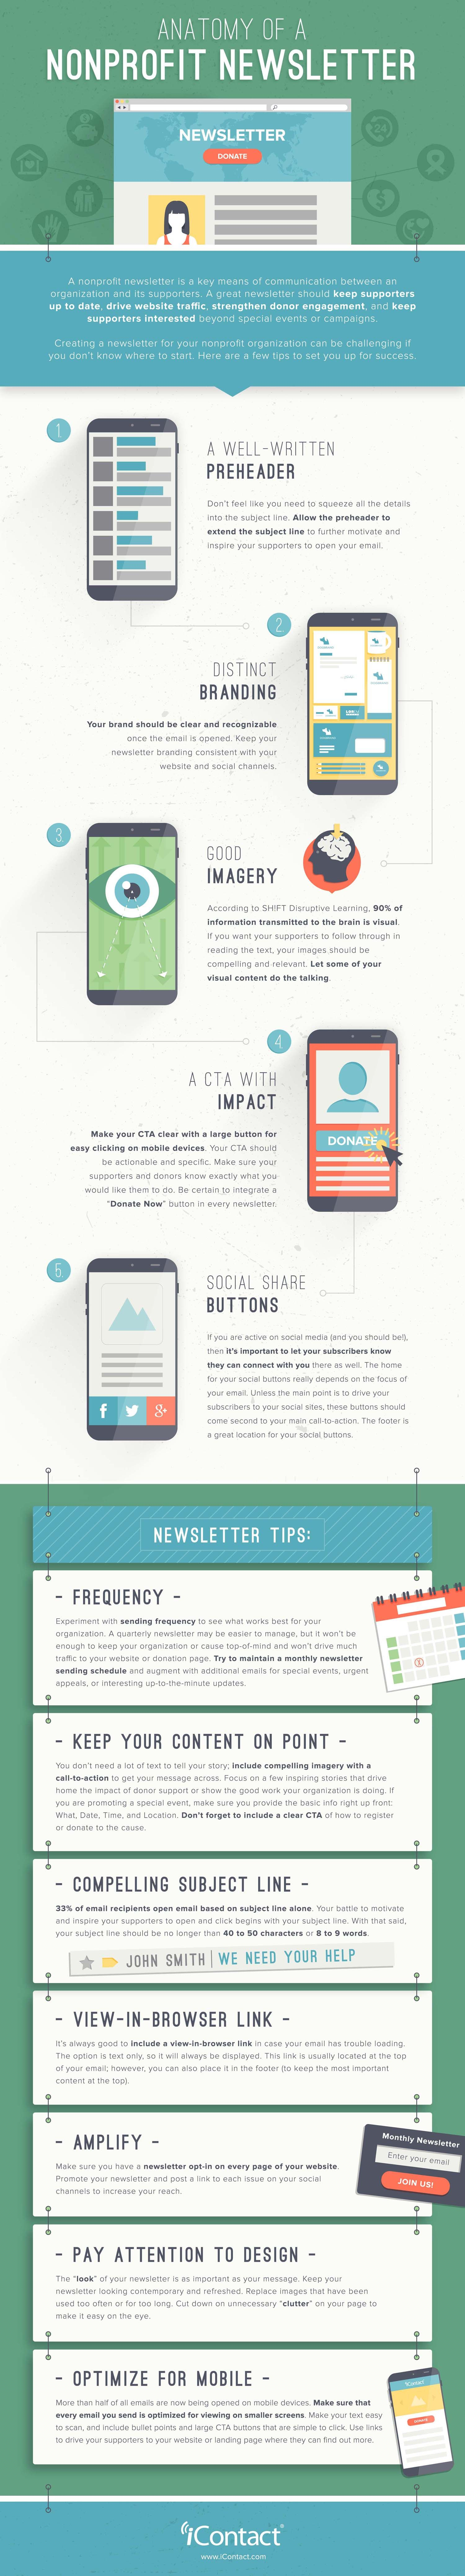 Anatomy of a Nonprofit Newsletter | uCollect Infographics